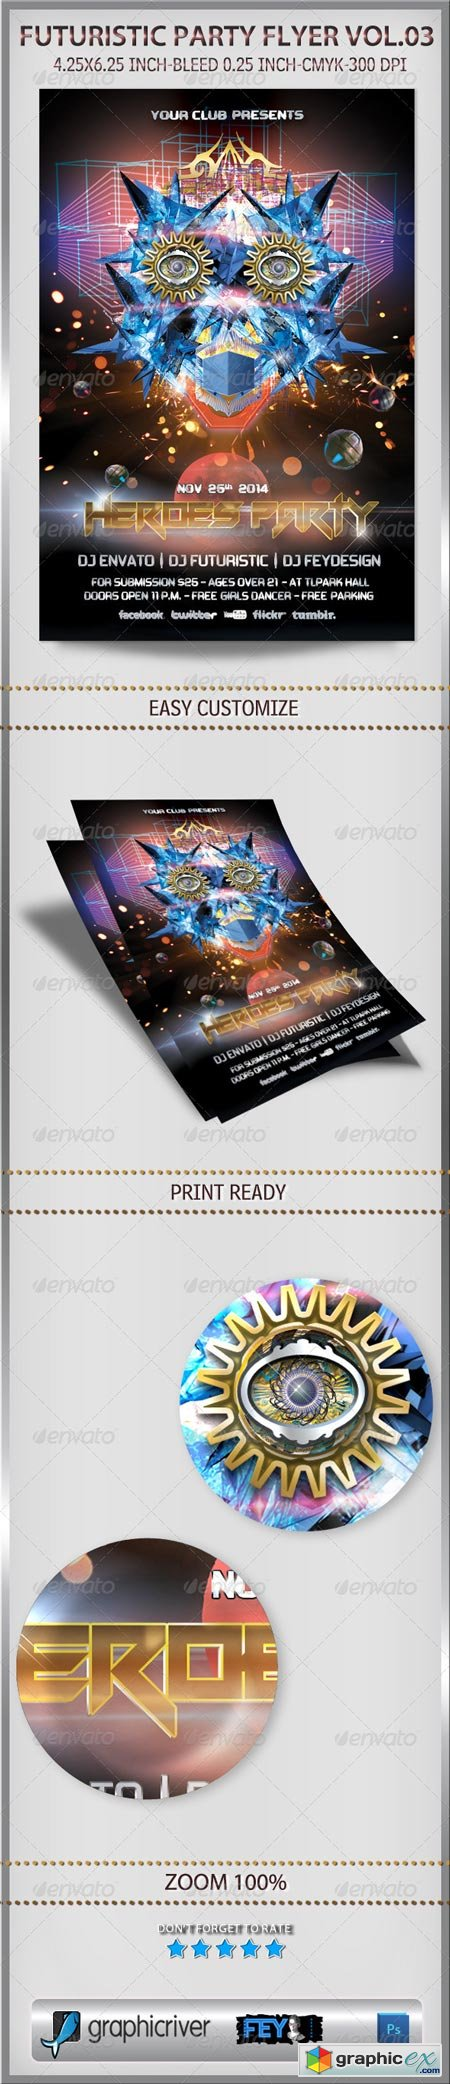 Futuristic Party Flyer Vol.03 6219880